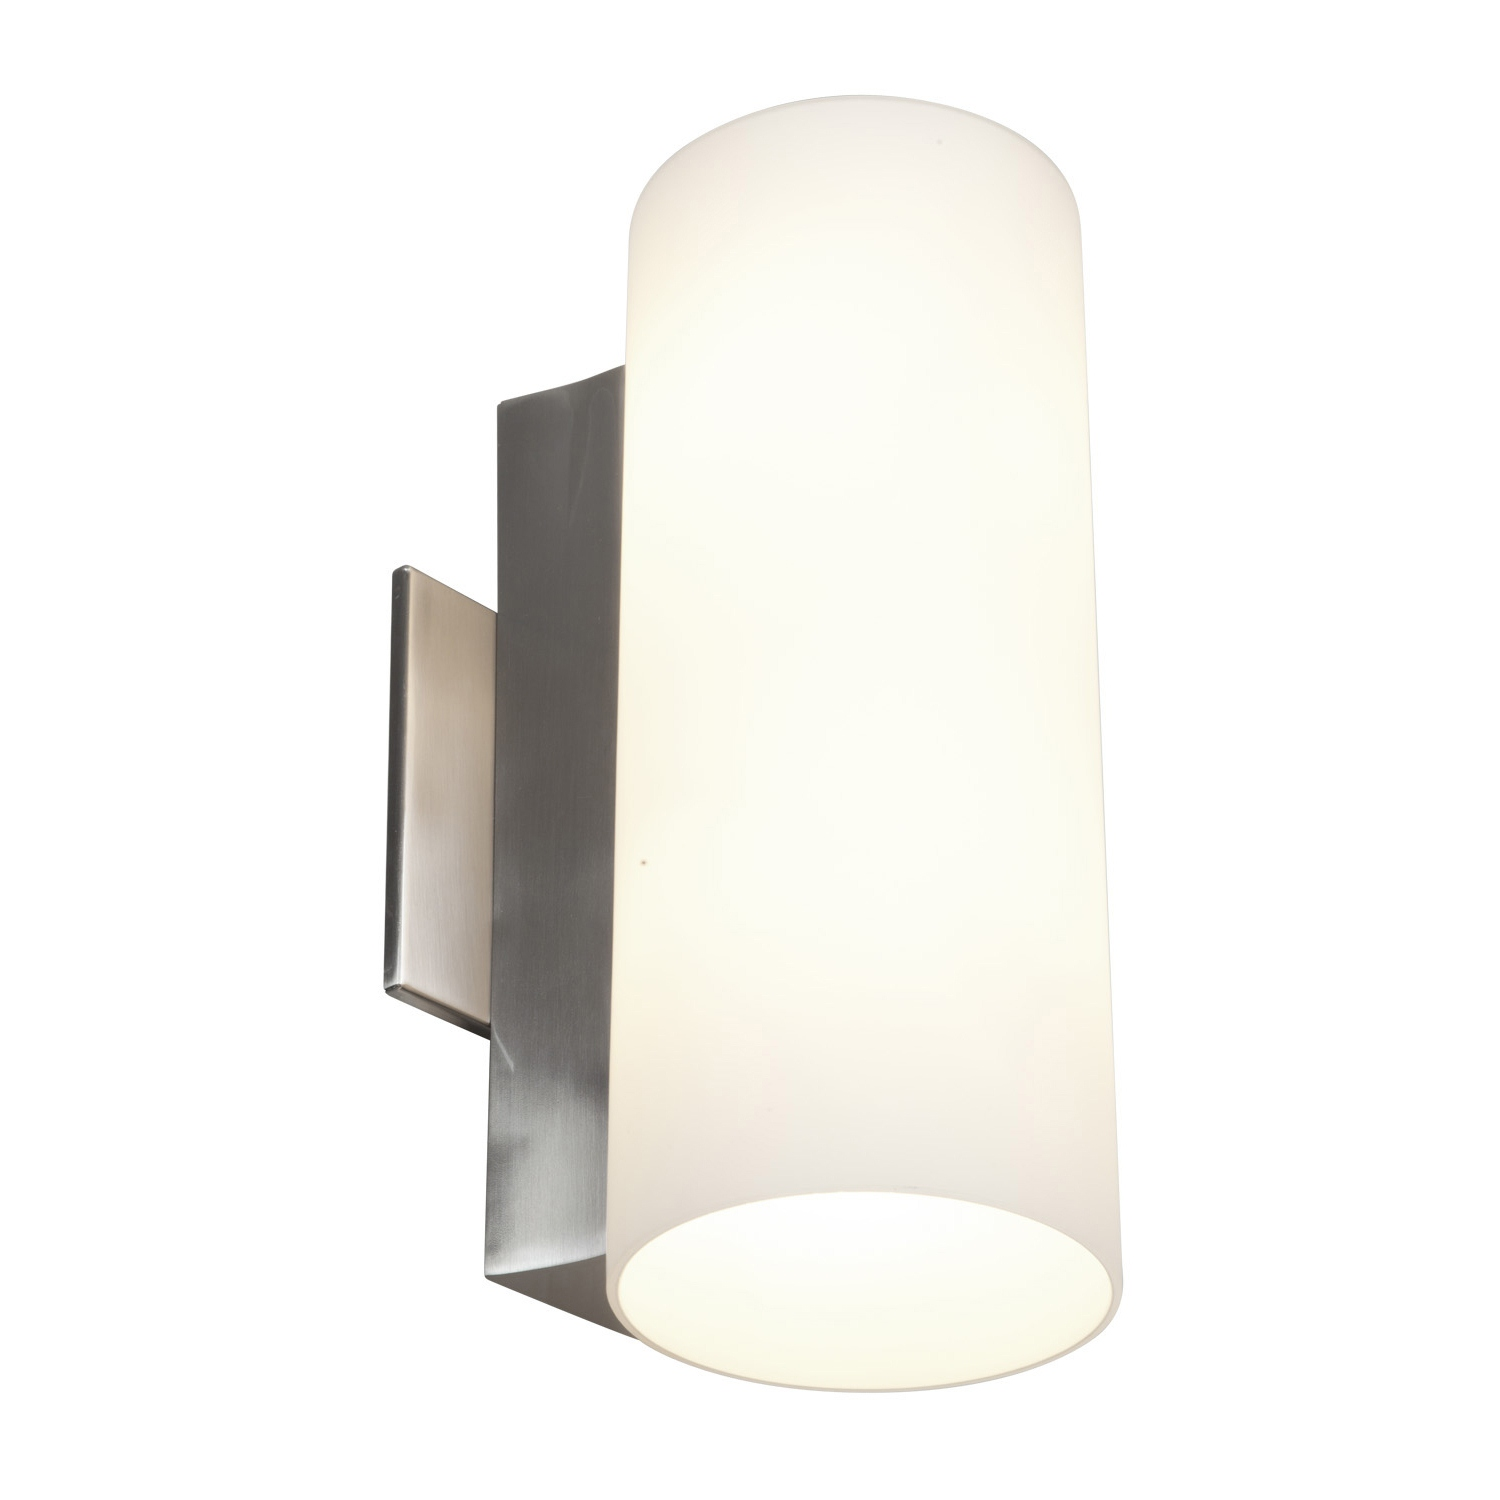 Wall Sconces Lamps : Add Beauty to Your Home with 2 light wall sconces Warisan Lighting